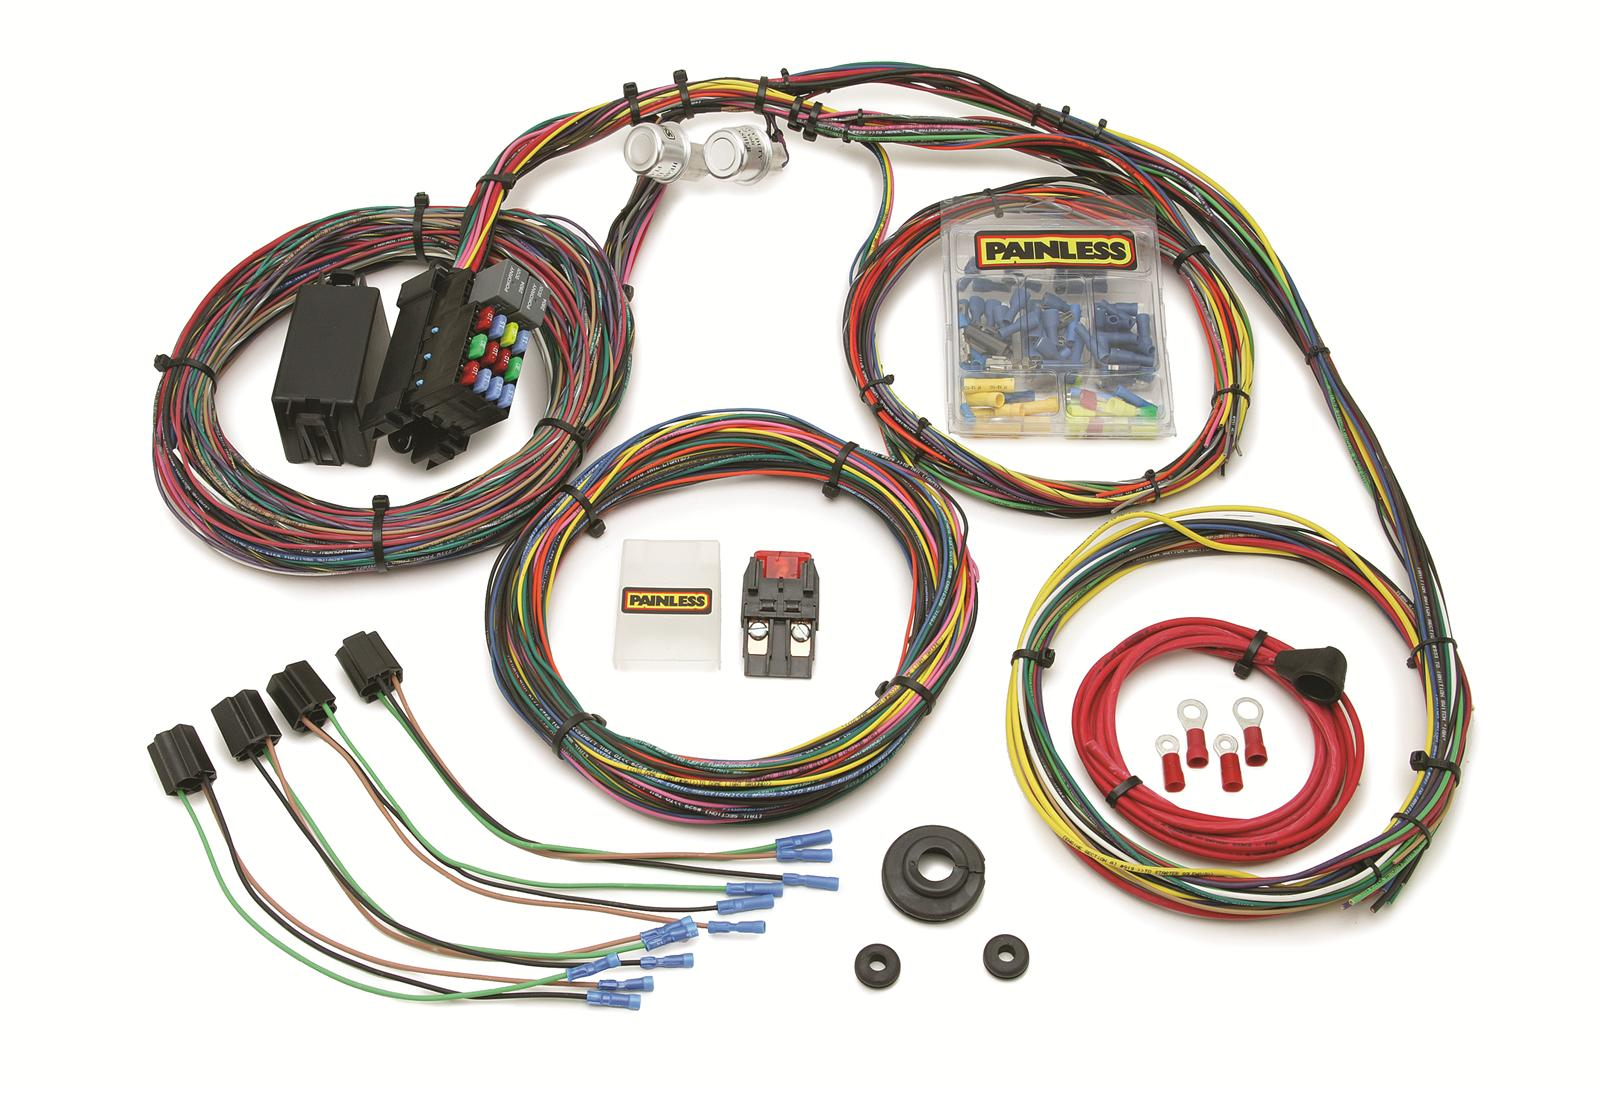 painless performance 21 circuit mopar color coded universal wiring Painless Wiring Diagram Chevy painless performance 21 circuit mopar color coded universal wiring harnesses 10127 free shipping on orders over $99 at summit racing